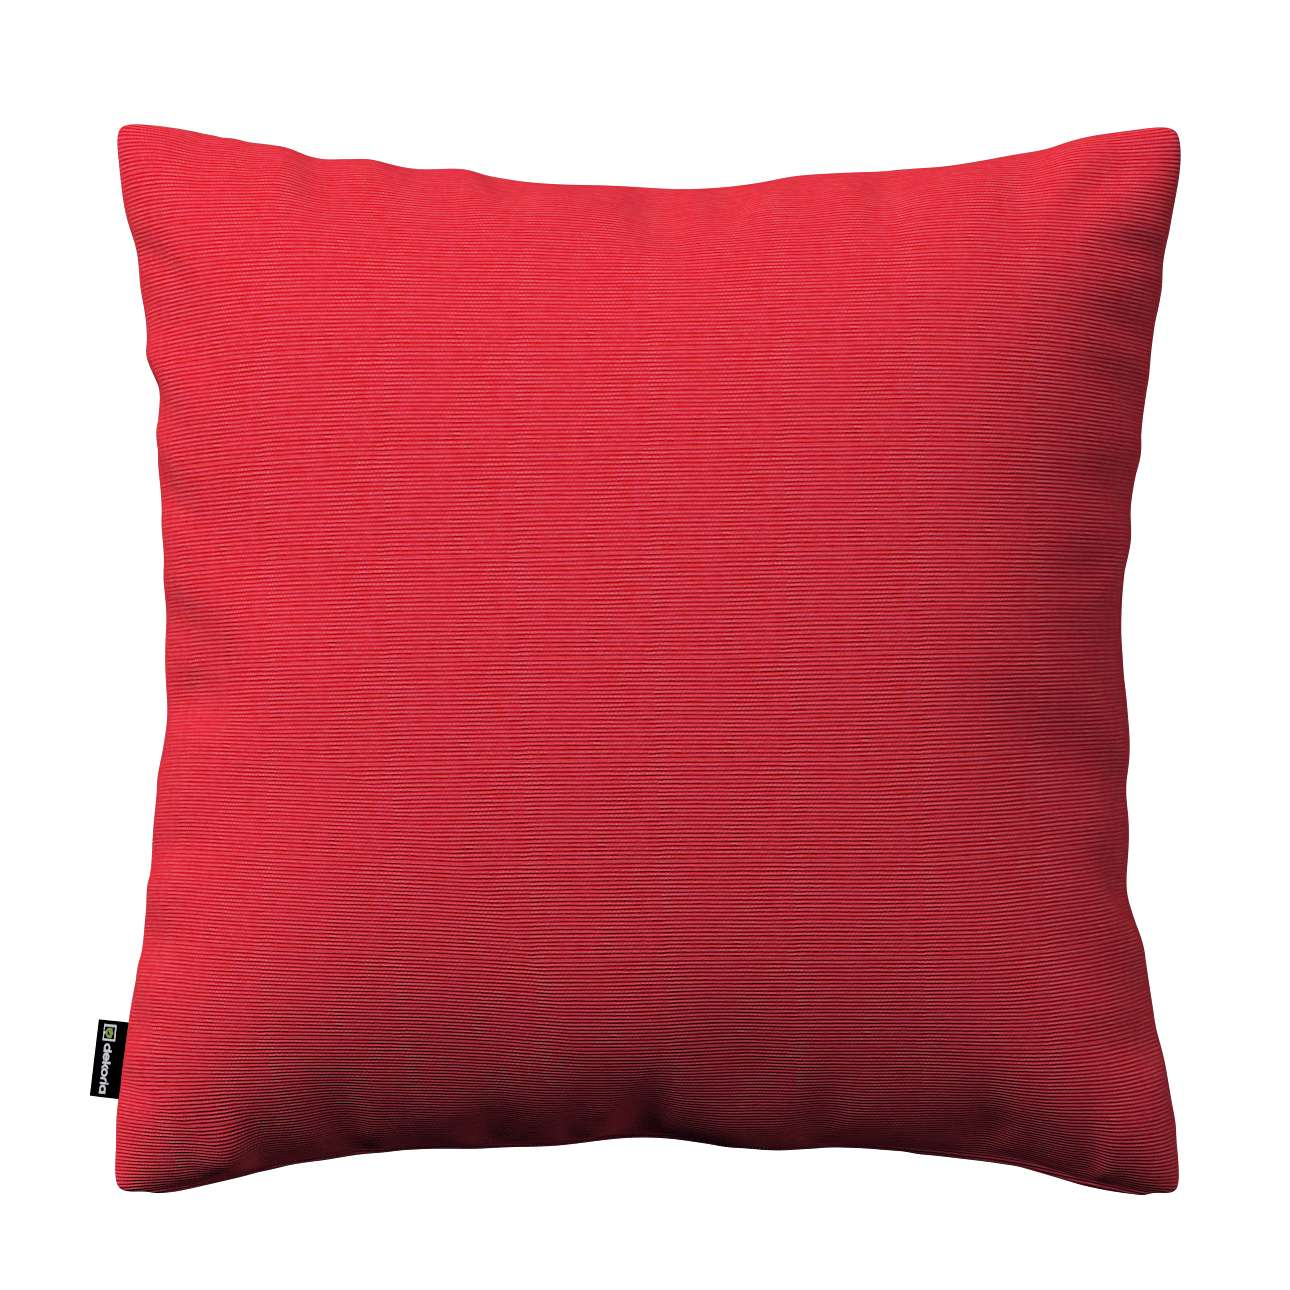 Kinga cushion cover 43 × 43 cm (17 × 17 inch) in collection Jupiter, fabric: 127-14